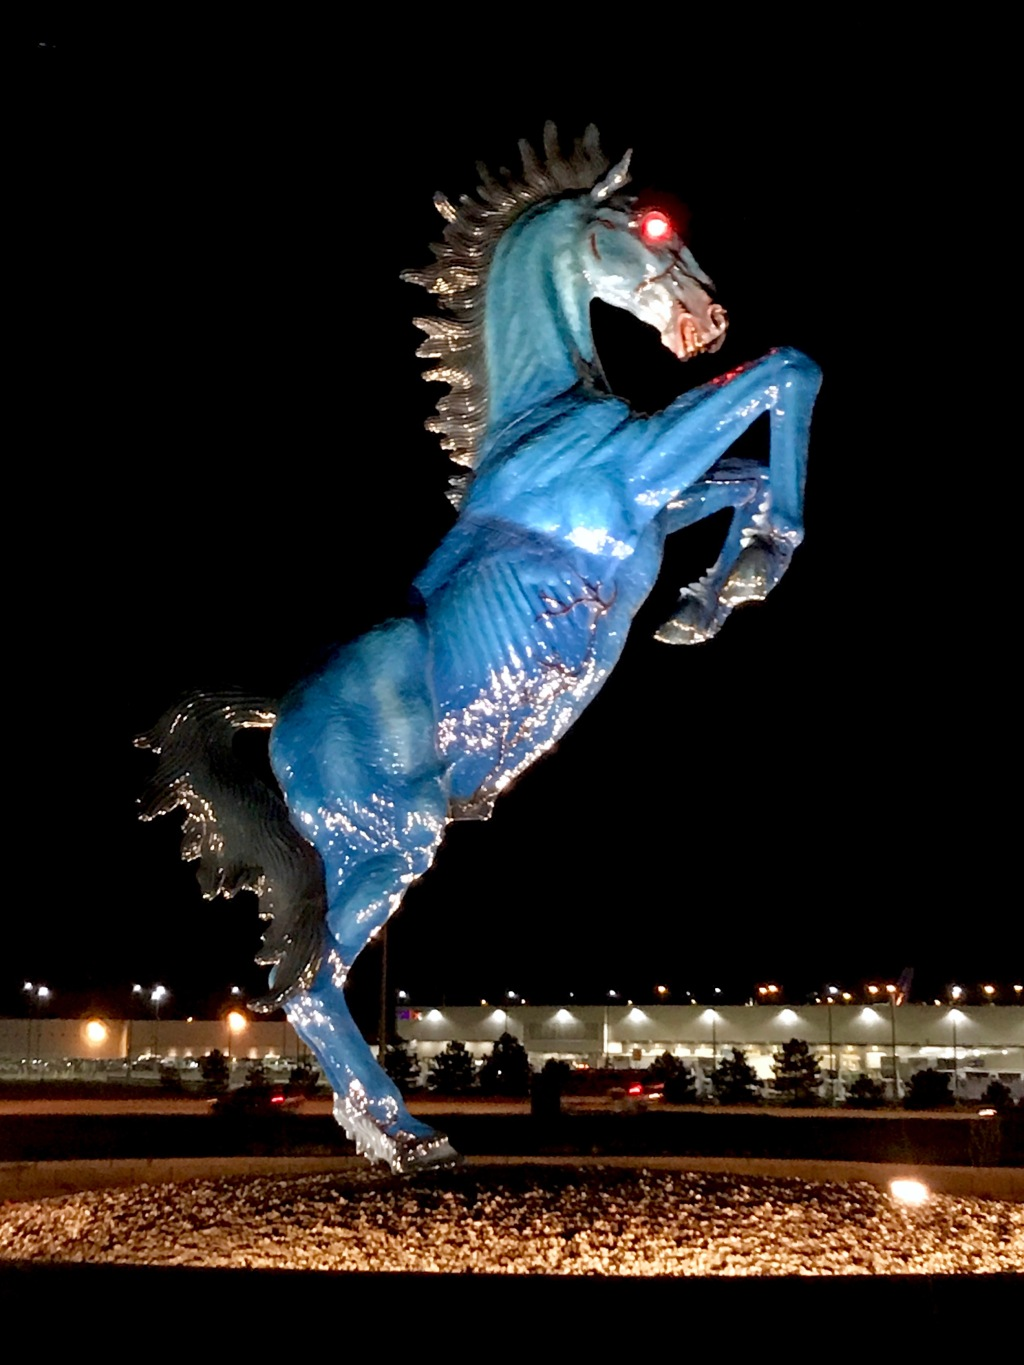 Blue Mustang (Blucifer), The Horse Sculpture With Glowing Red Eyes at Denver International Airport